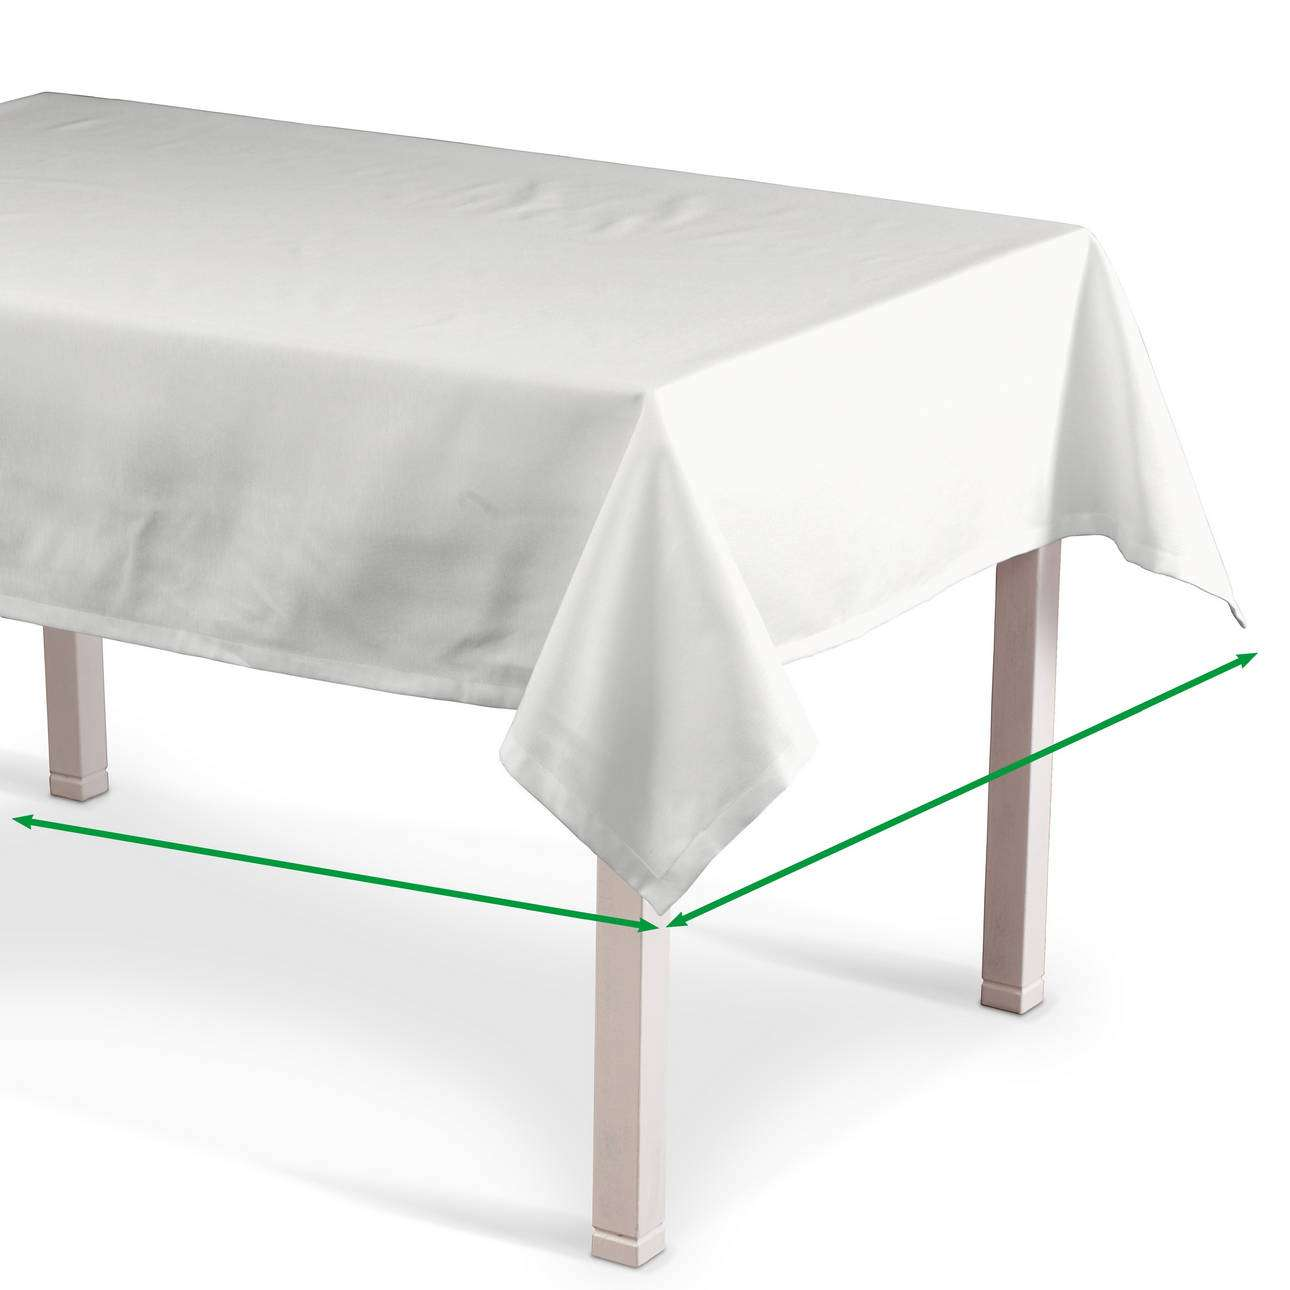 Rectangular tablecloth in collection Damasco, fabric: 141-78